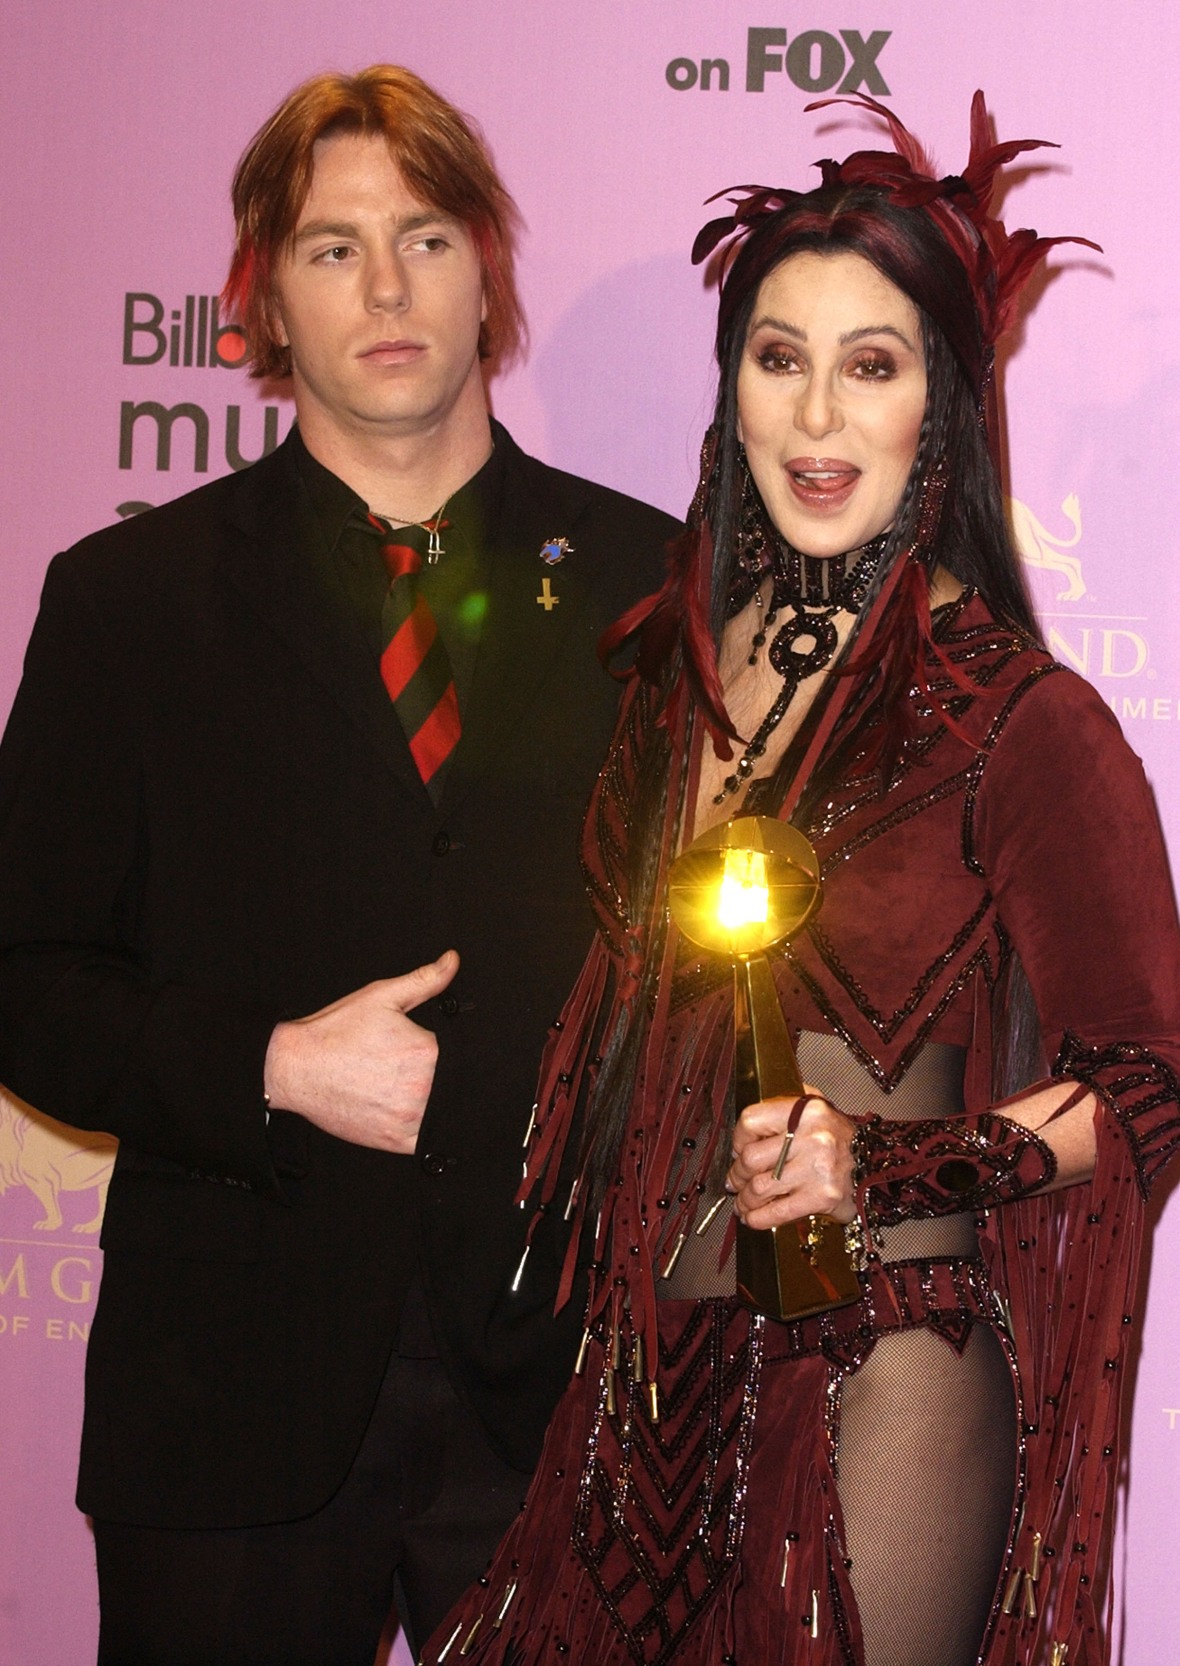 cher son getty images